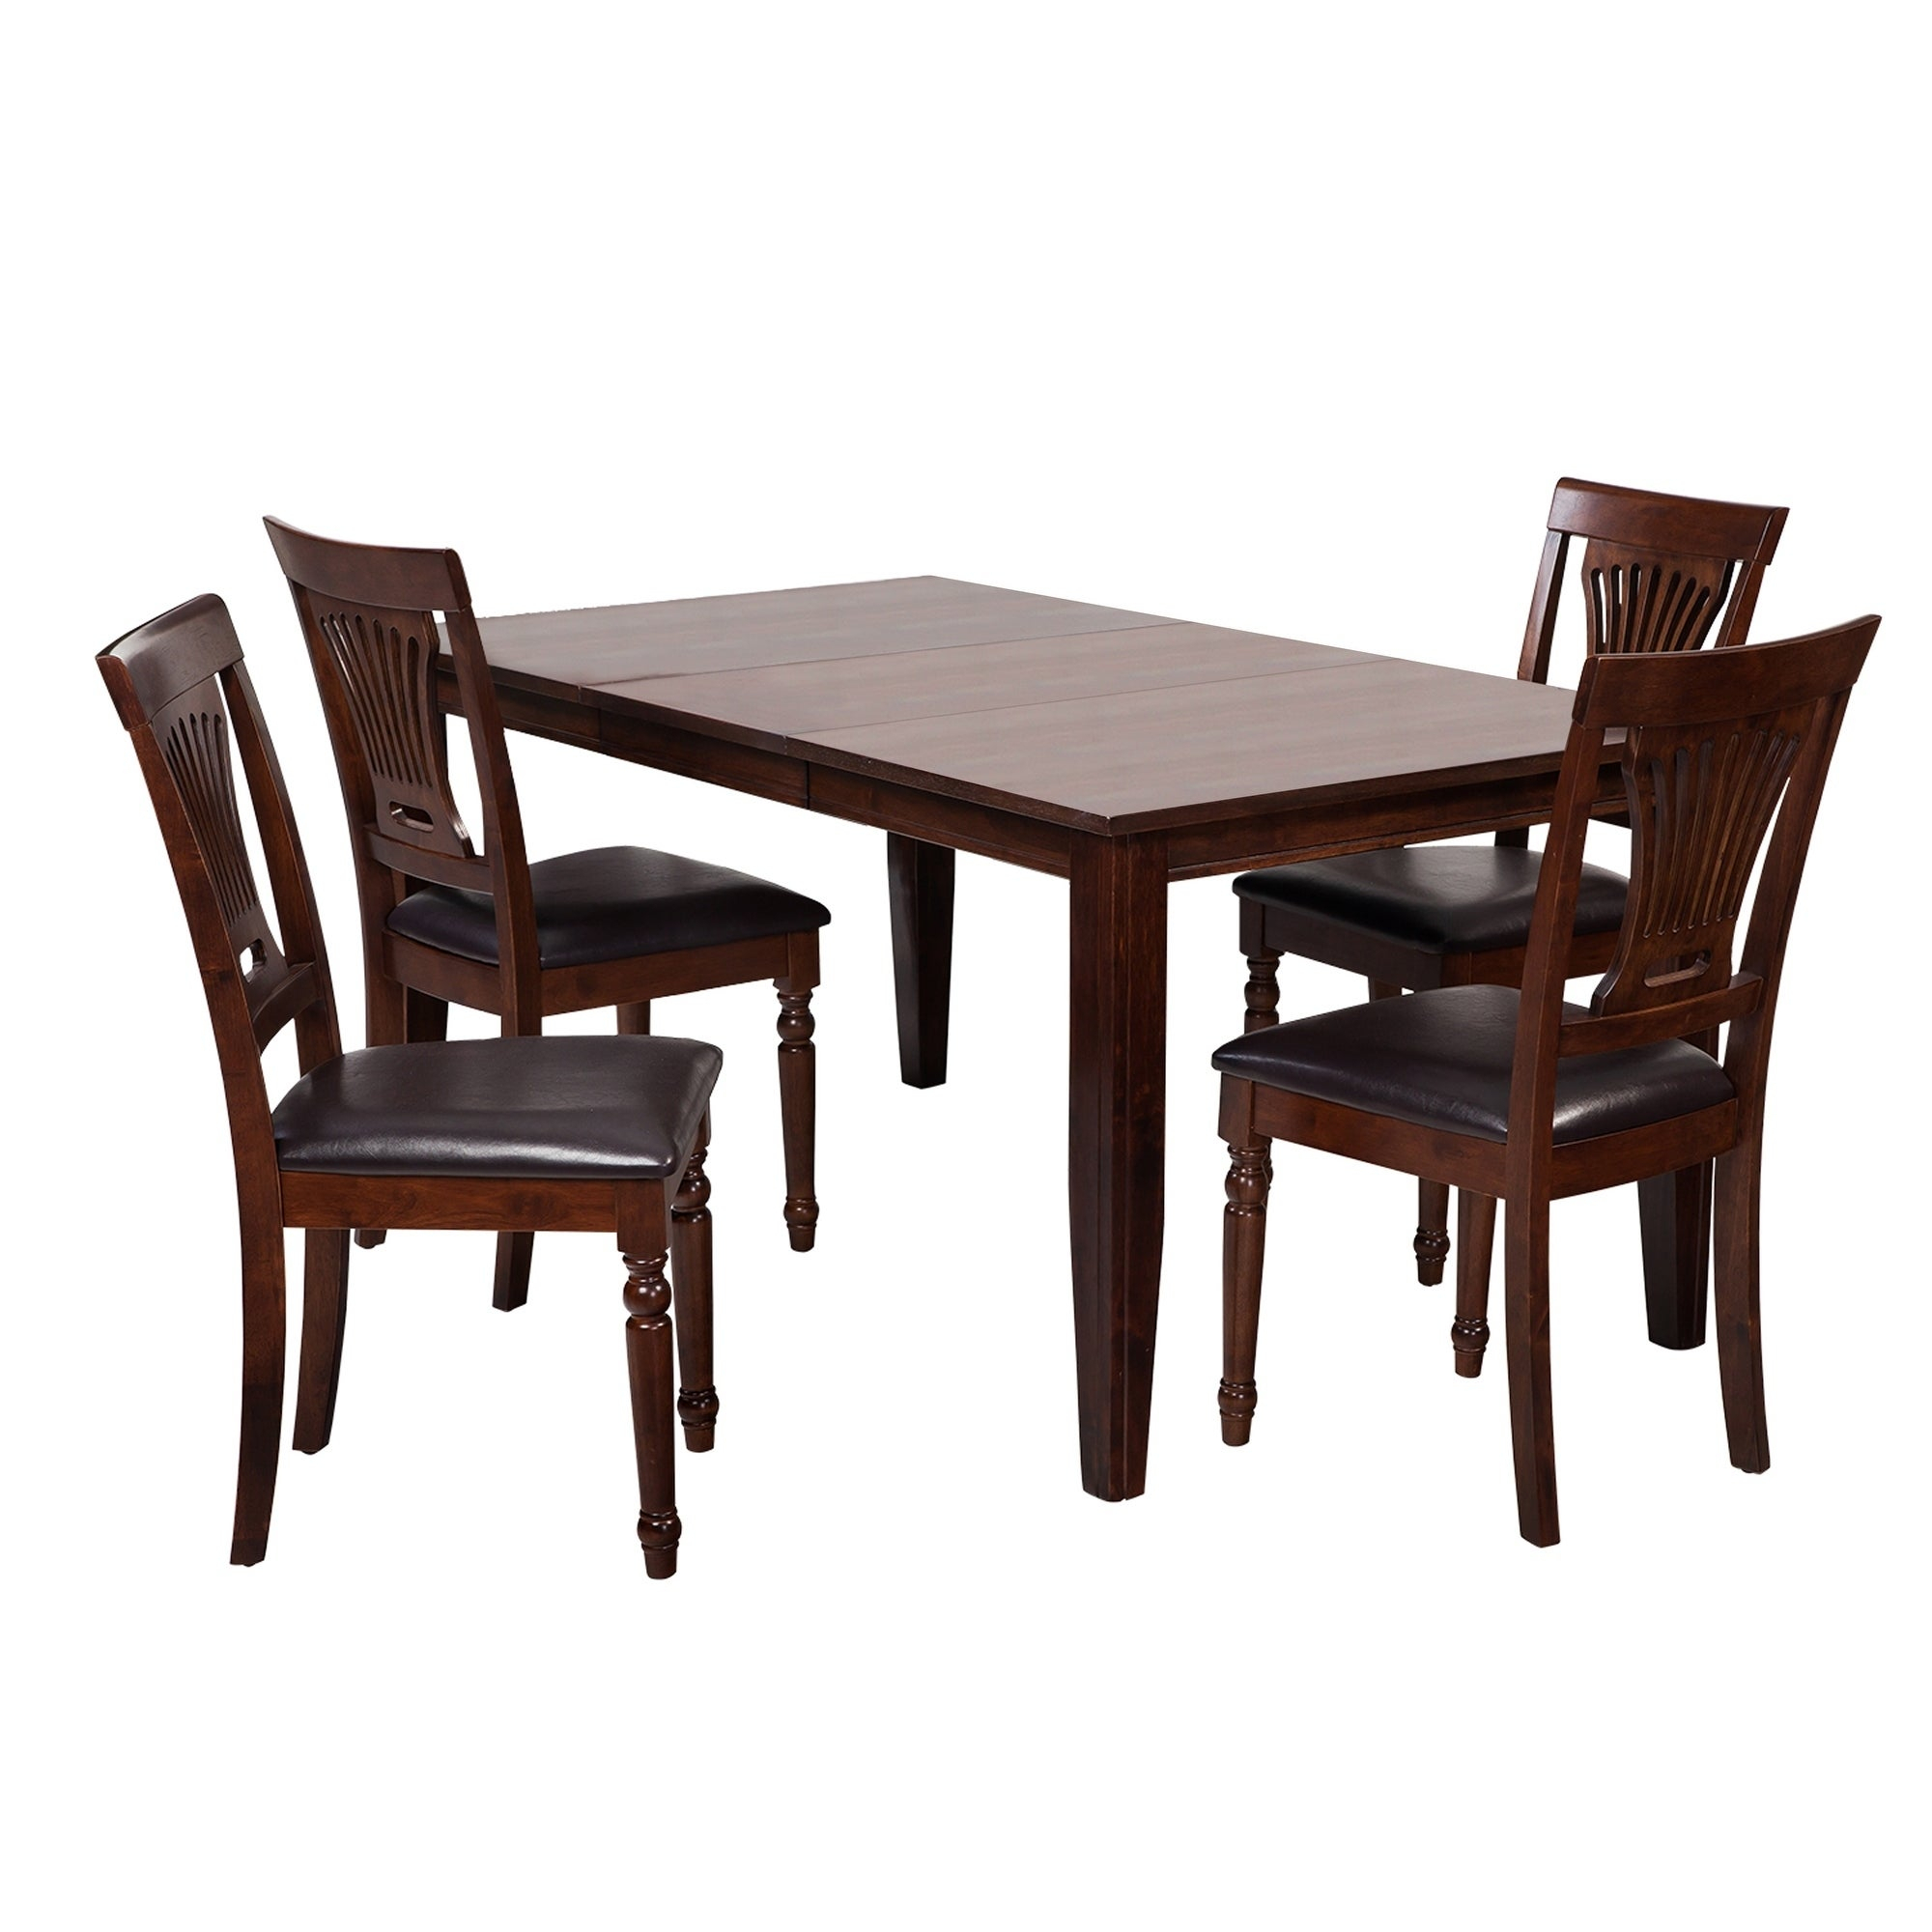 "5 Piece Solid Wood Dining Set ""aden"", Modern Kitchen Table Set, Espresso Inside Most Popular Adan 5 Piece Solid Wood Dining Sets (Set Of 5) (View 3 of 20)"